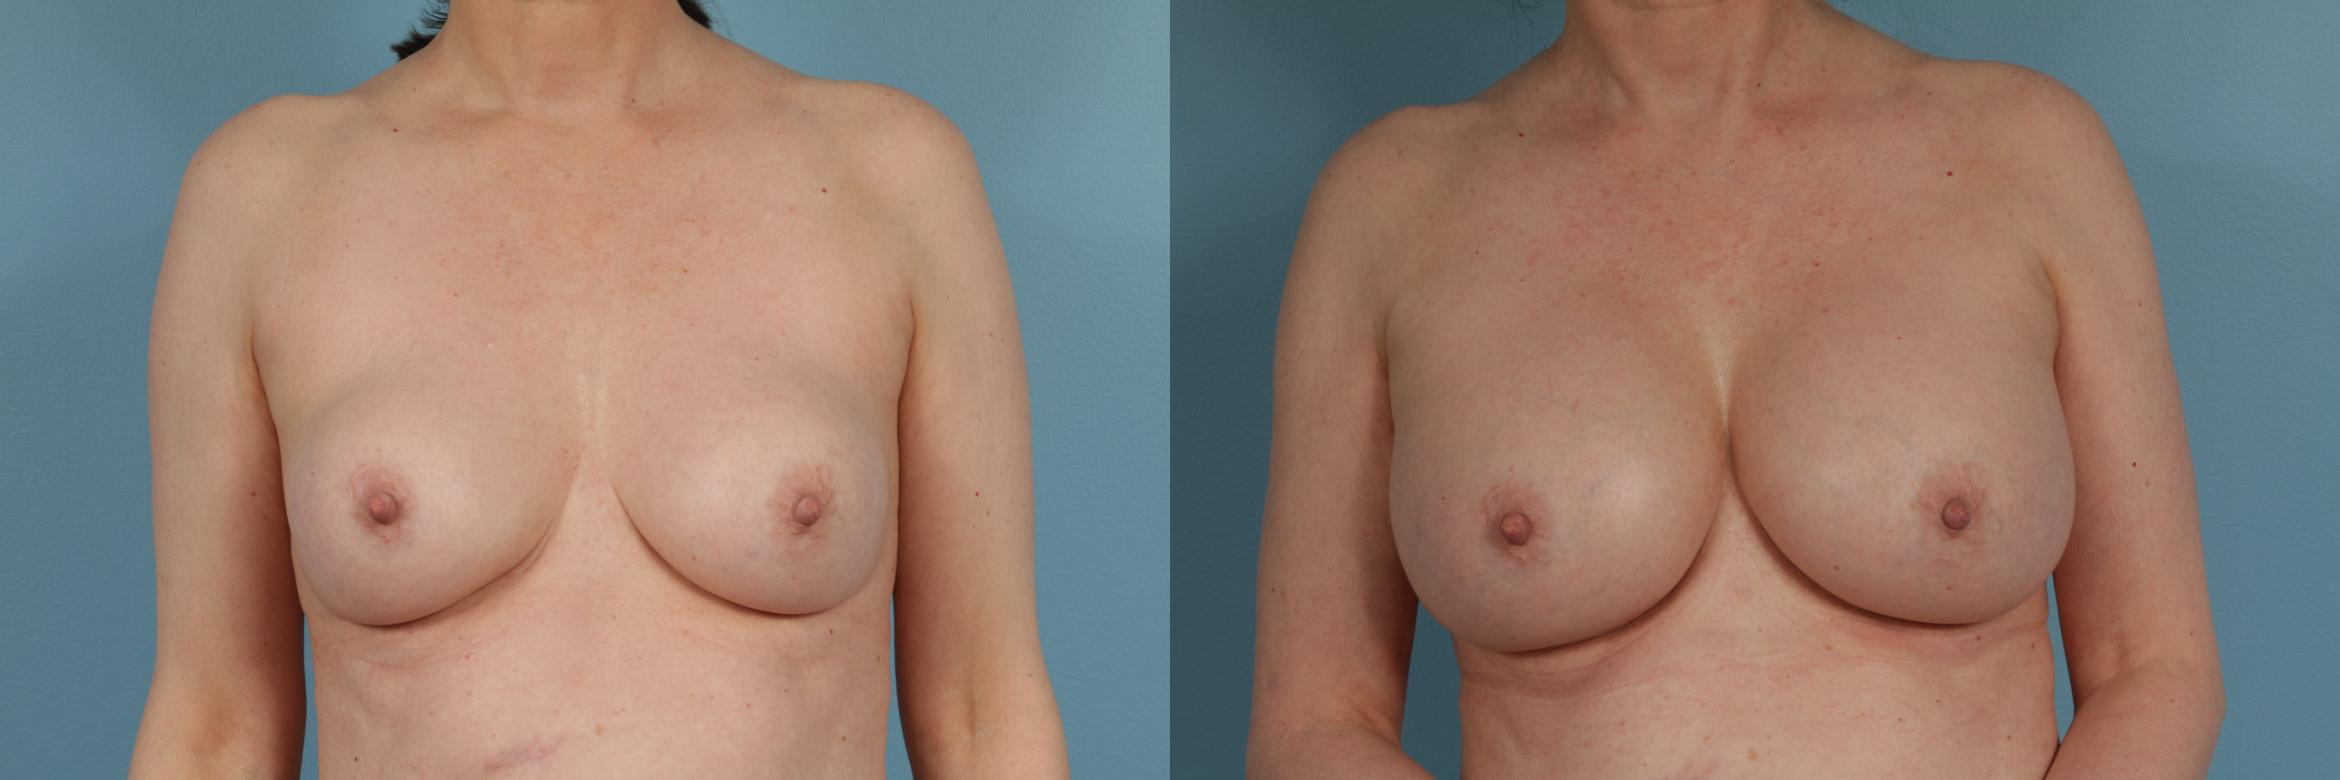 Breast Augmentation Case 305 Before & After View #1 | Chicago, IL | TLKM Plastic Surgery